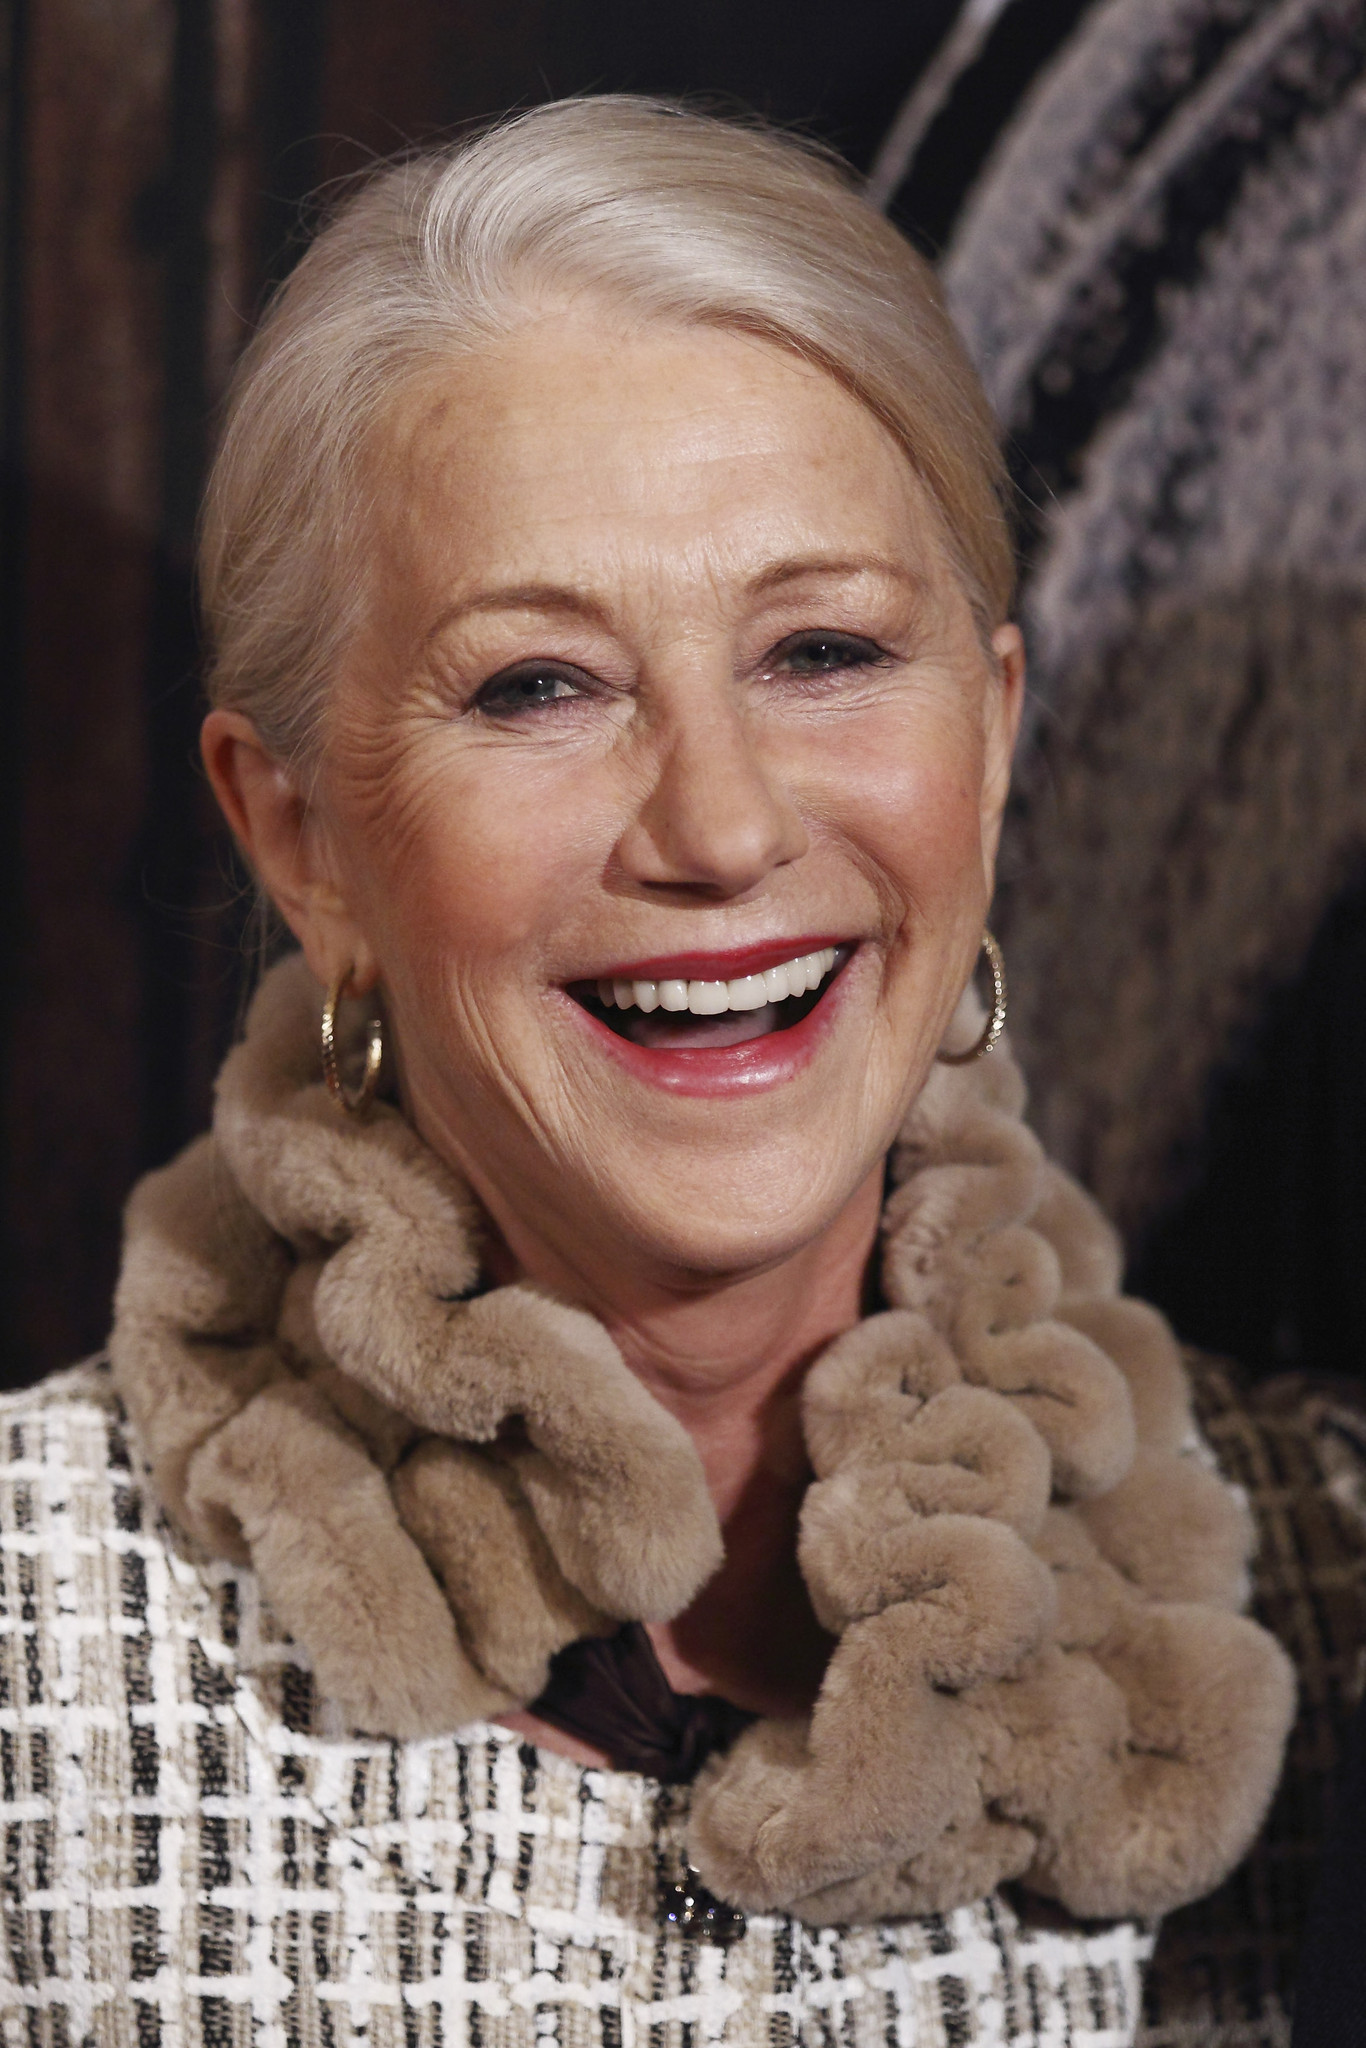 Pictures: Cruise ship godmothers - Helen Mirren